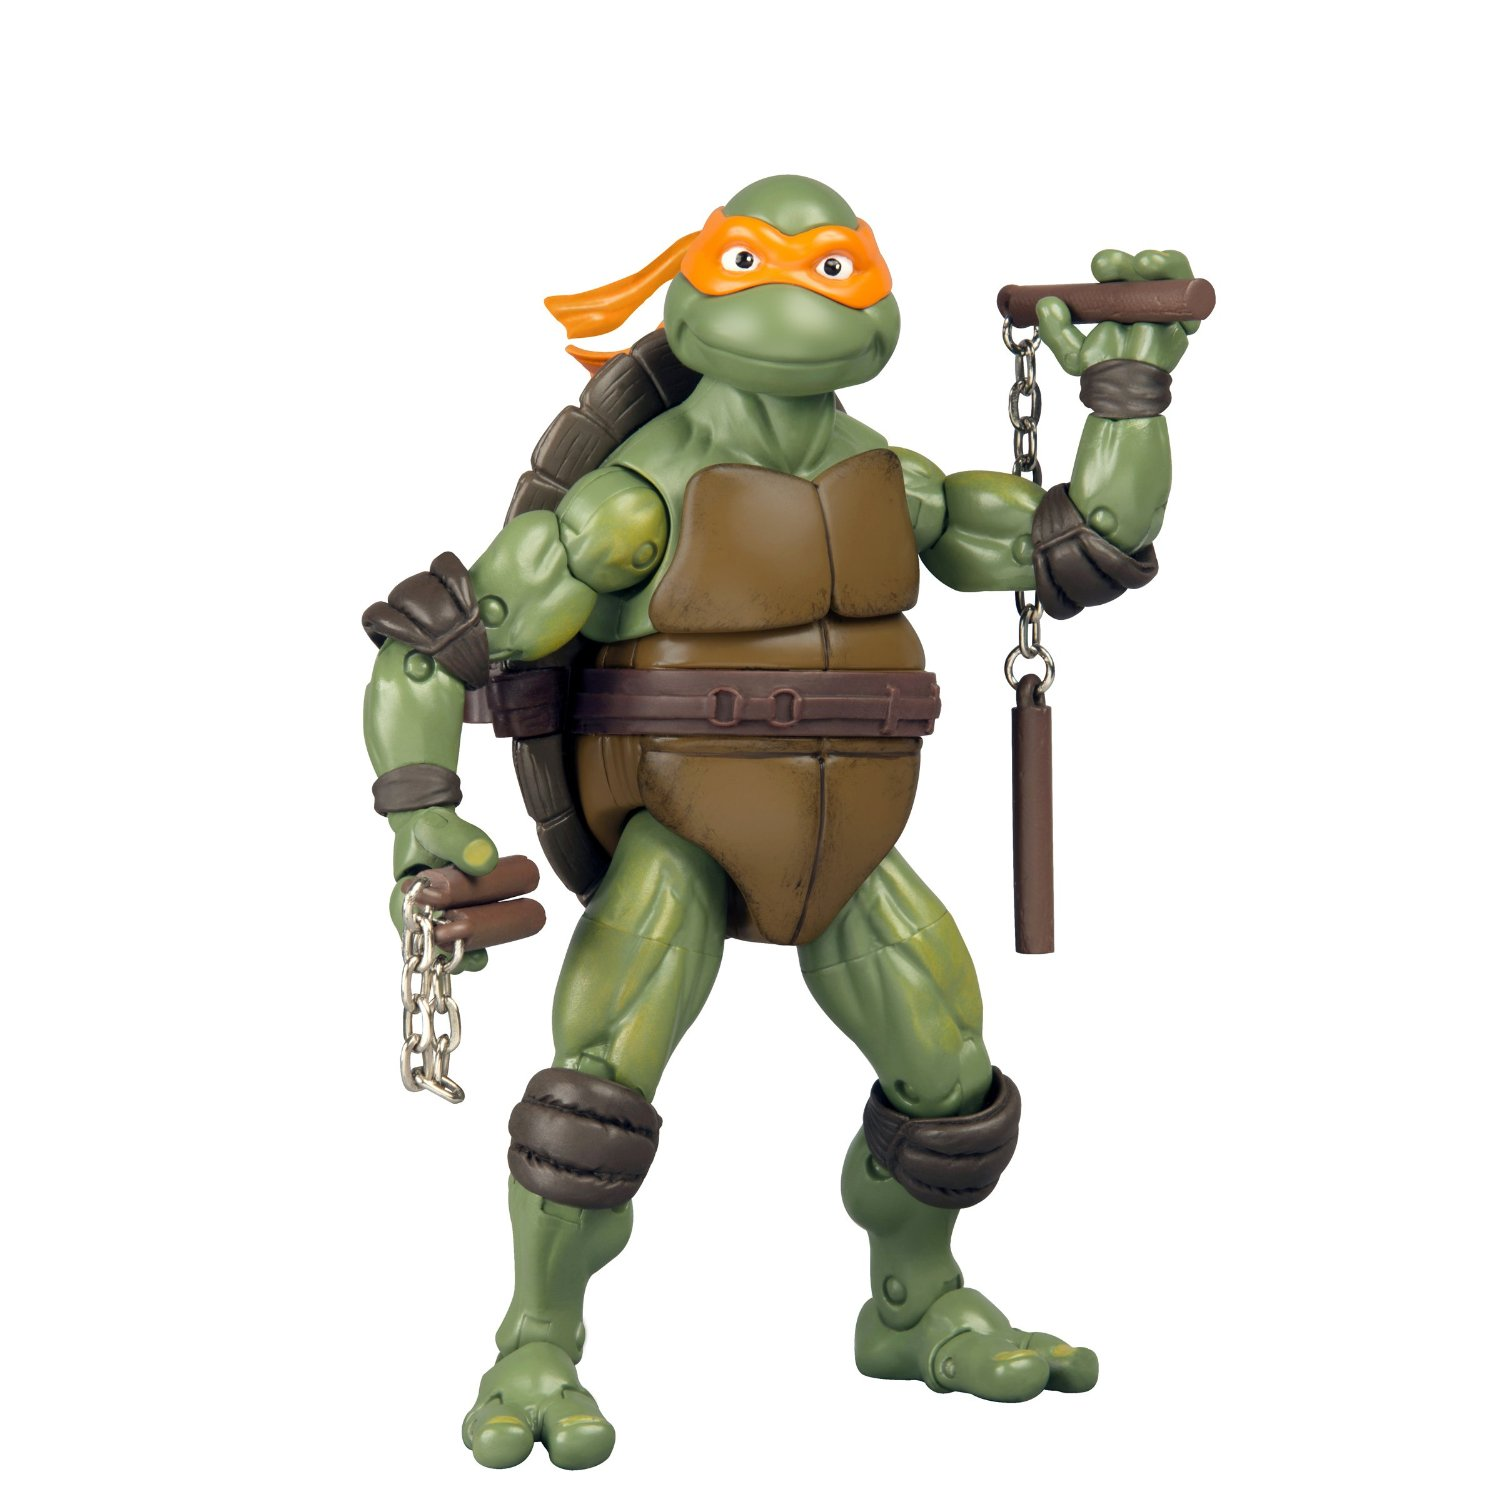 Top 10 Ninja Turtles Toys of 2014 - Crooked Ninja